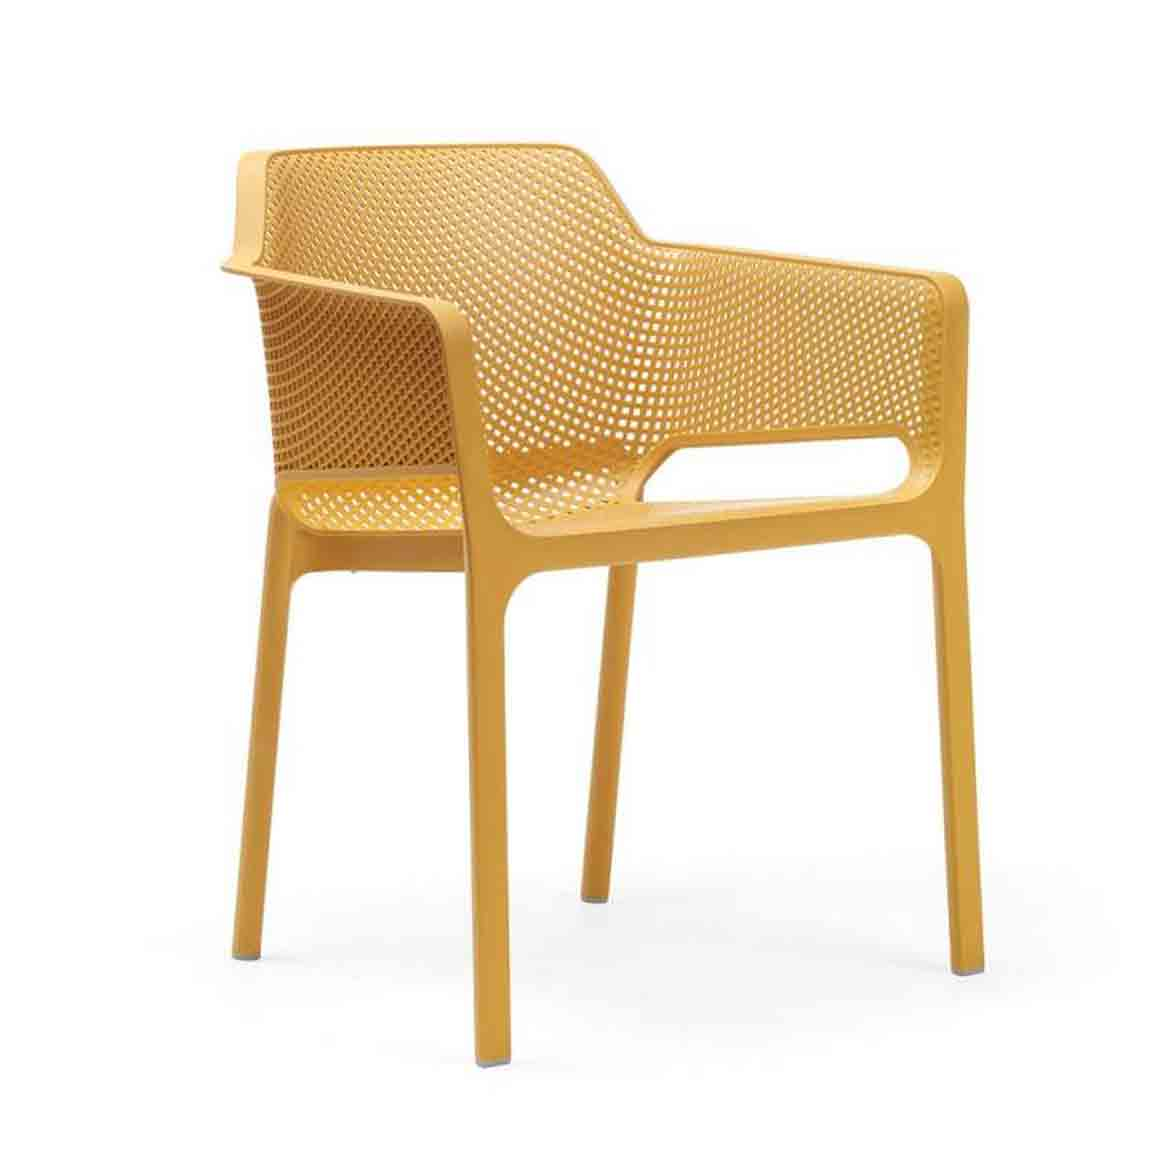 Monobloc armchair. Uniformly colored fiberglass polypropylene resins with UV additives. Matt finish. With non-slip feet. Cushion available to order. Recyclable resin.